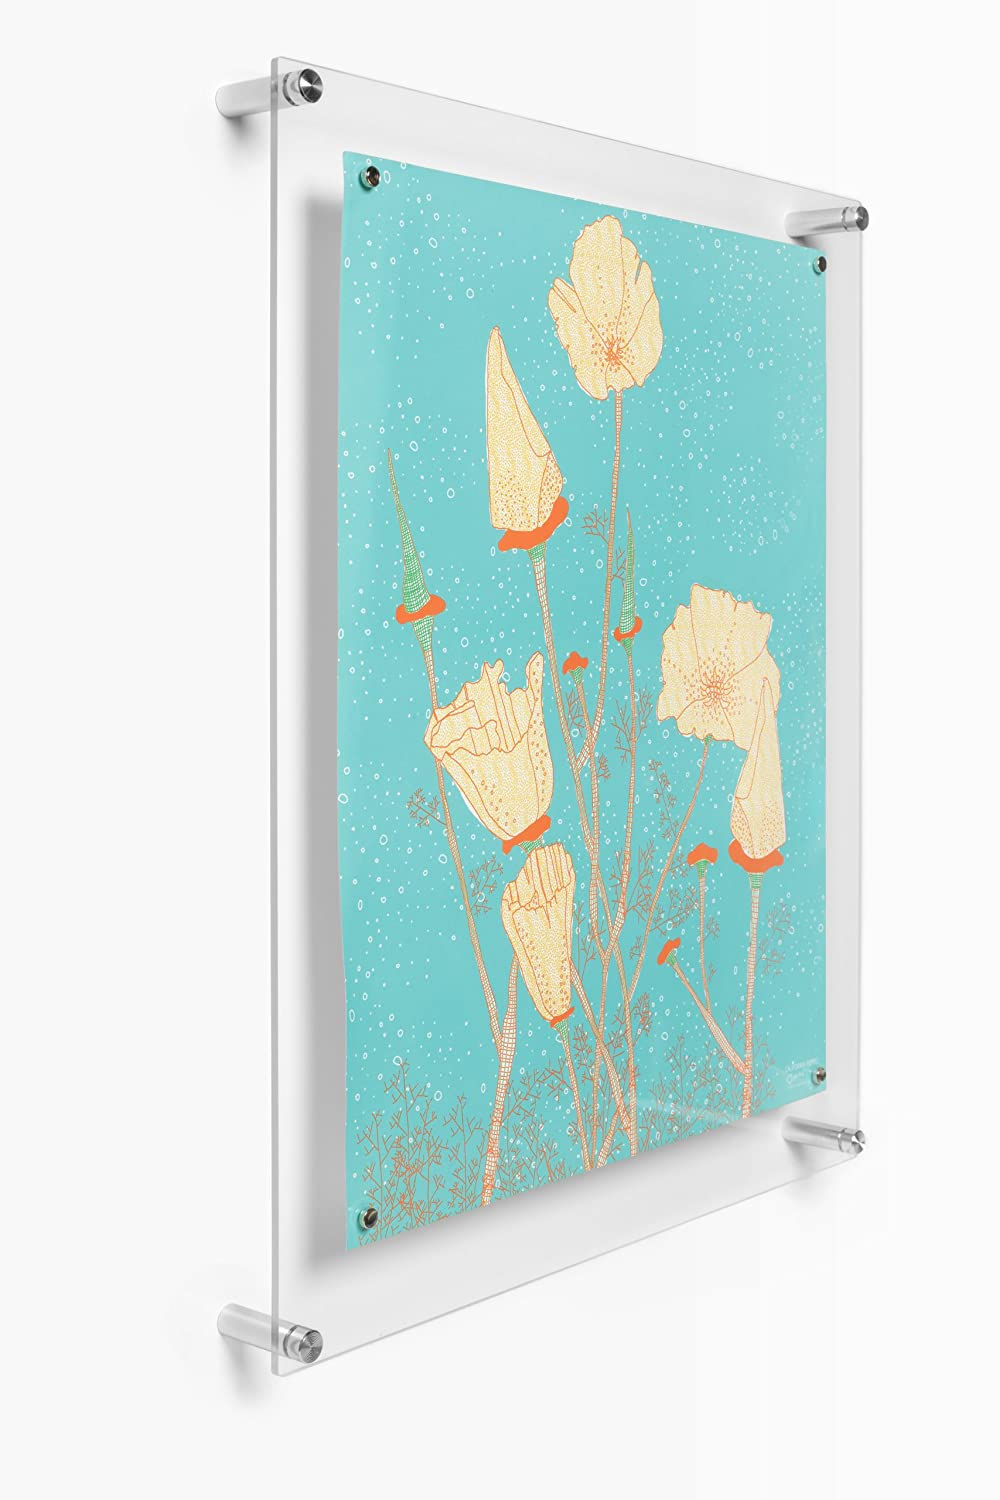 Amazon.com: Wexel Art 19x23-Inch Popster Magnetic Single Panel ...